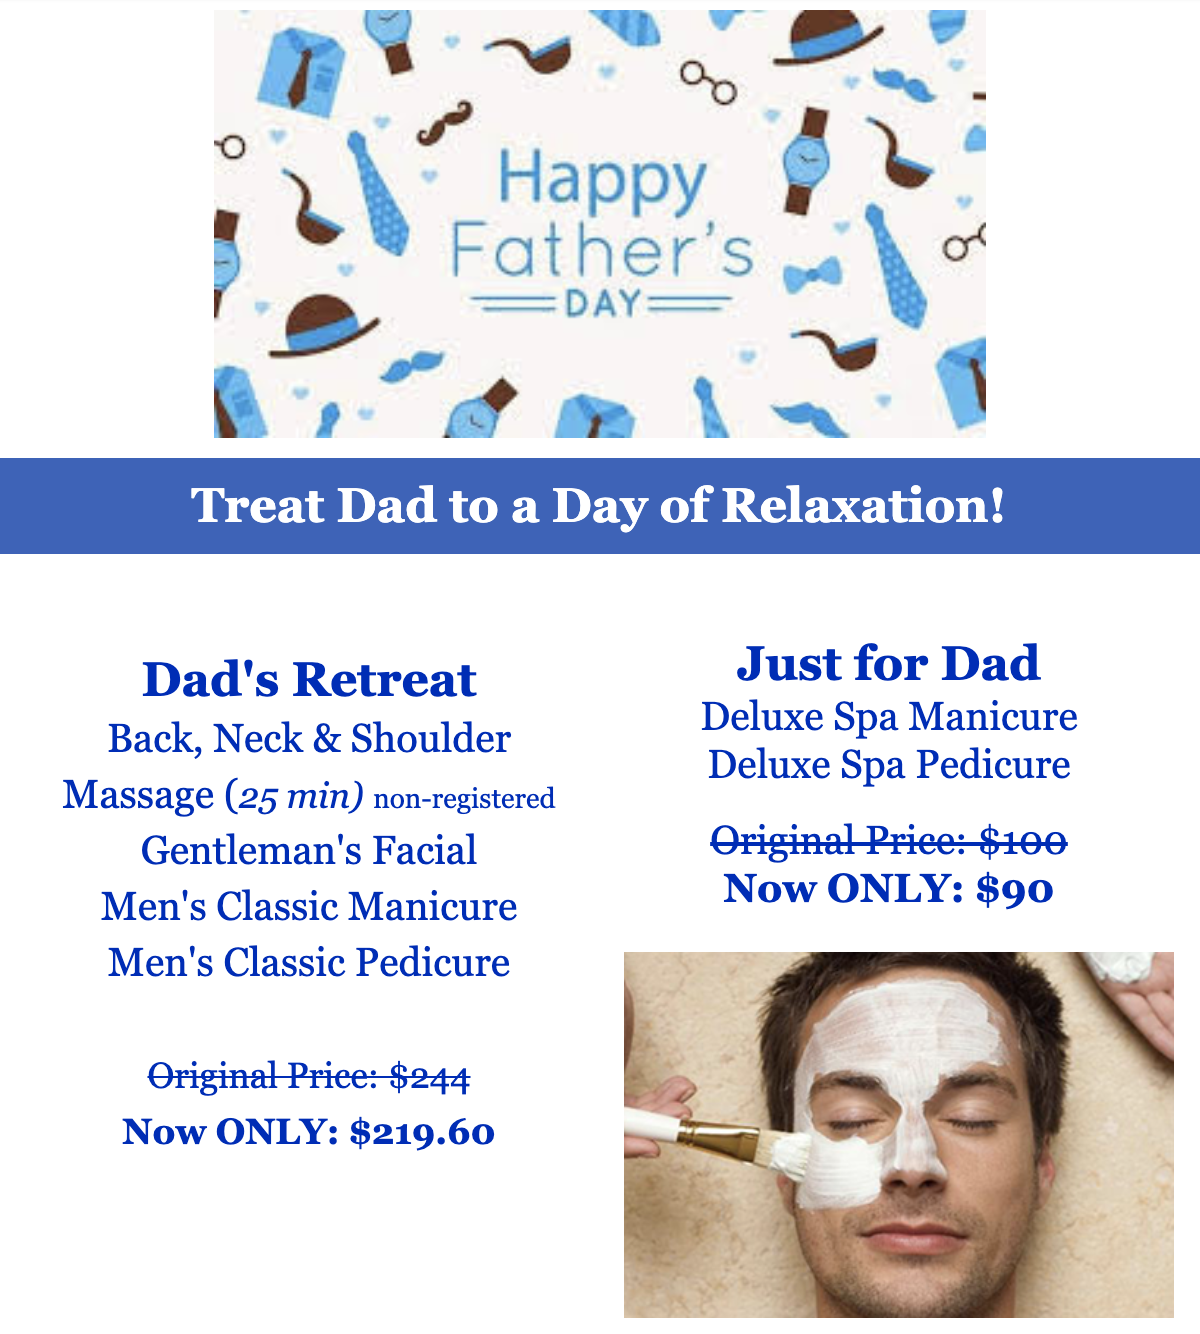 Father's Day Spa Treatments Mississauga